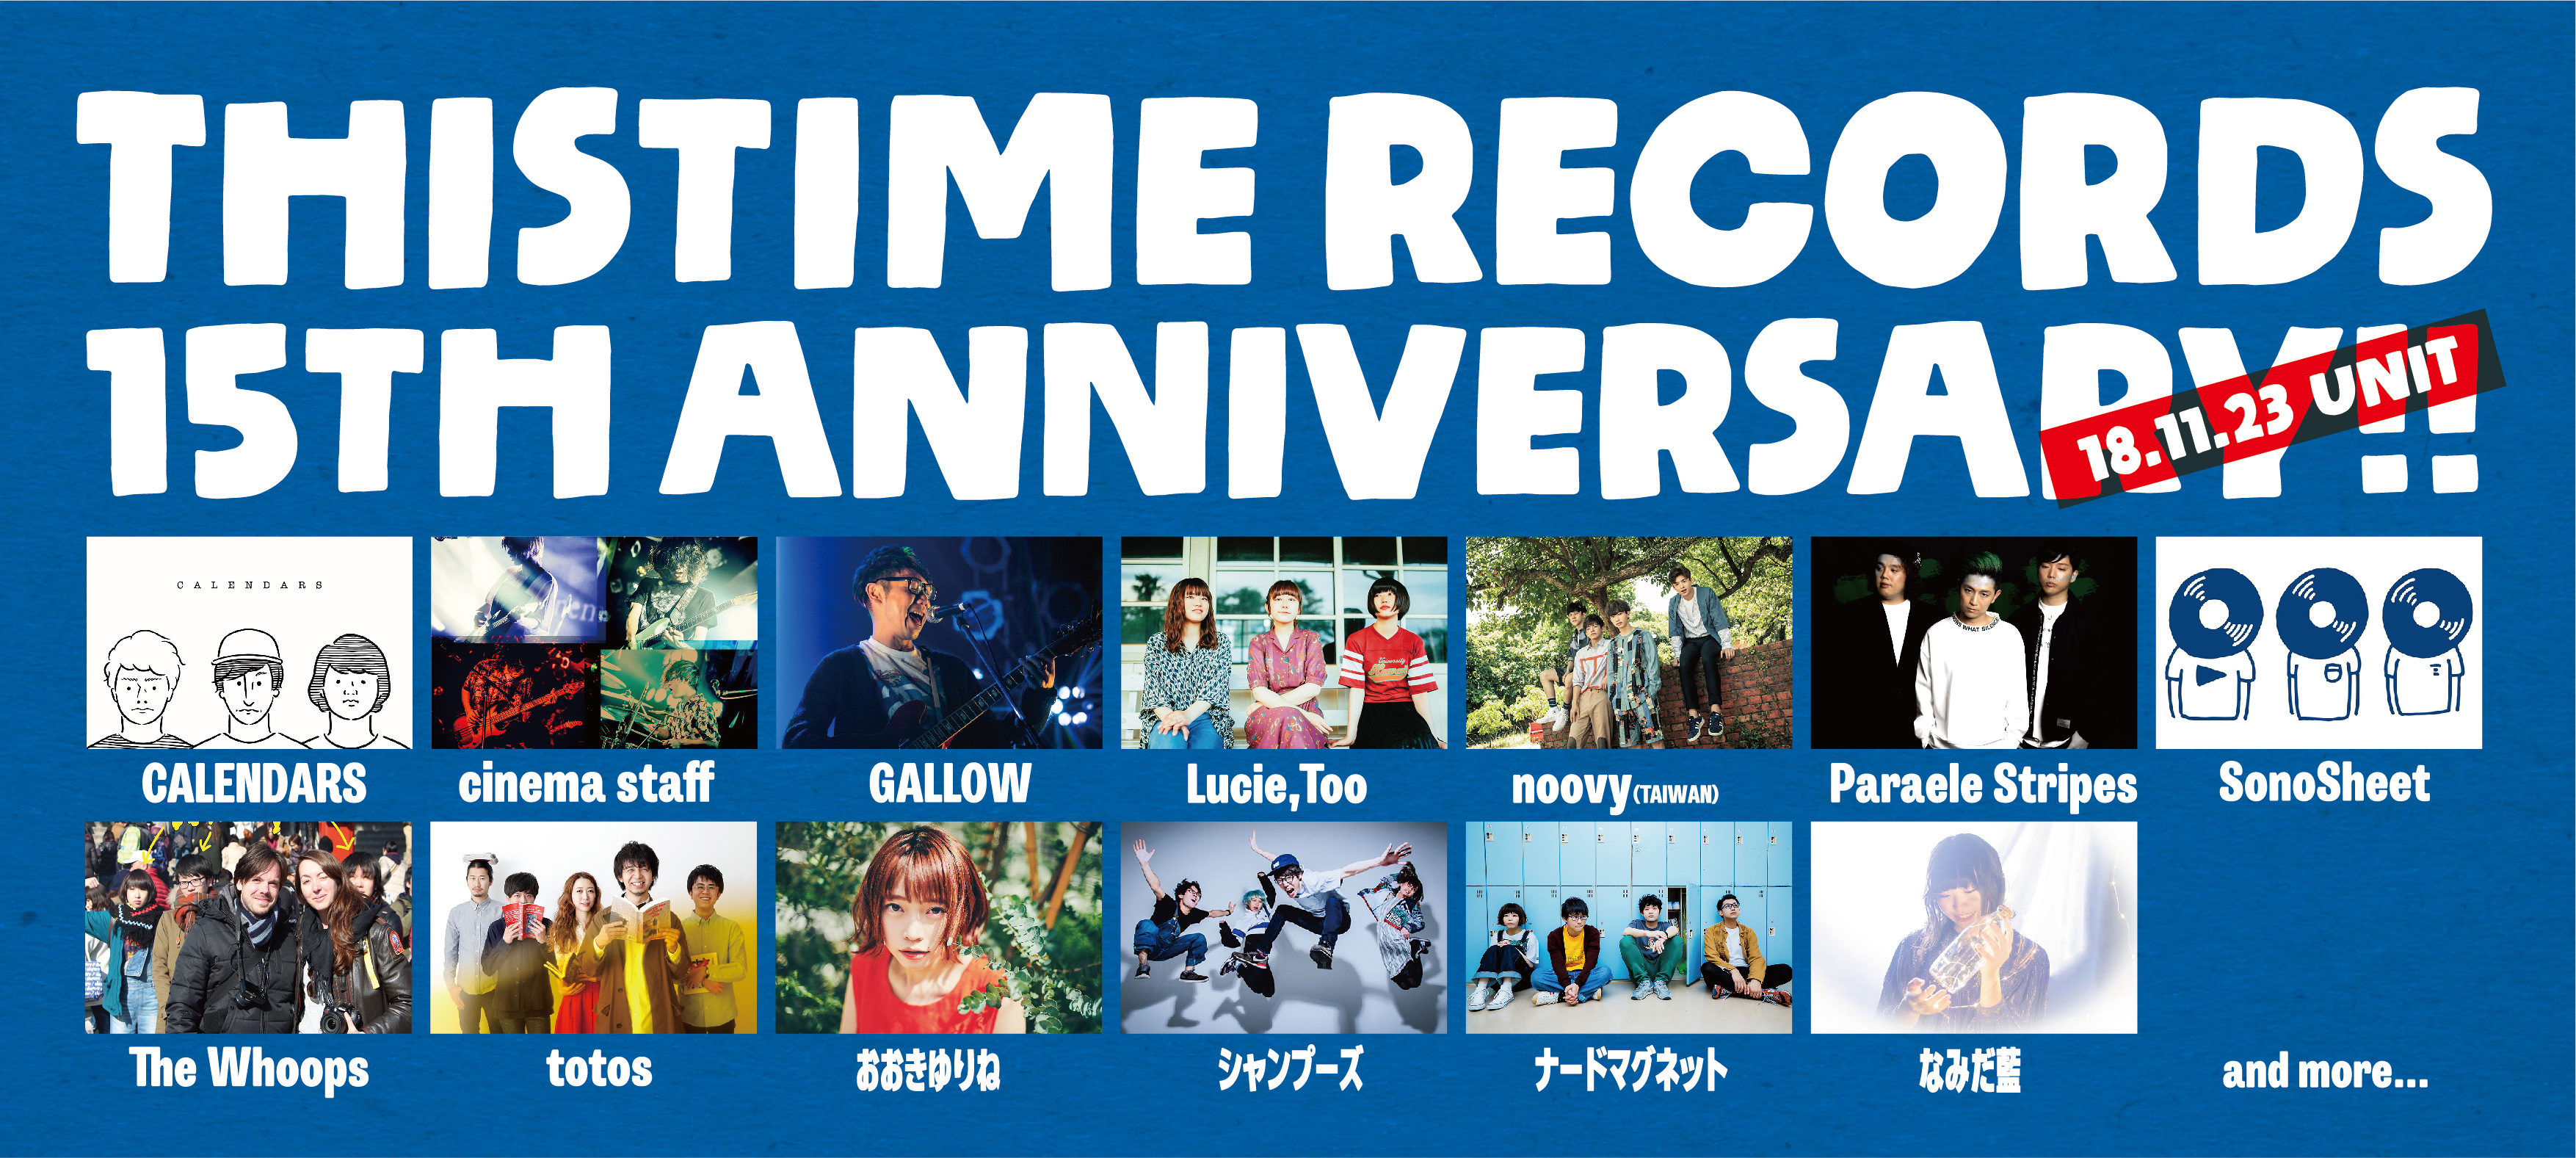 thistime records 15th anniversary 追加line up発表